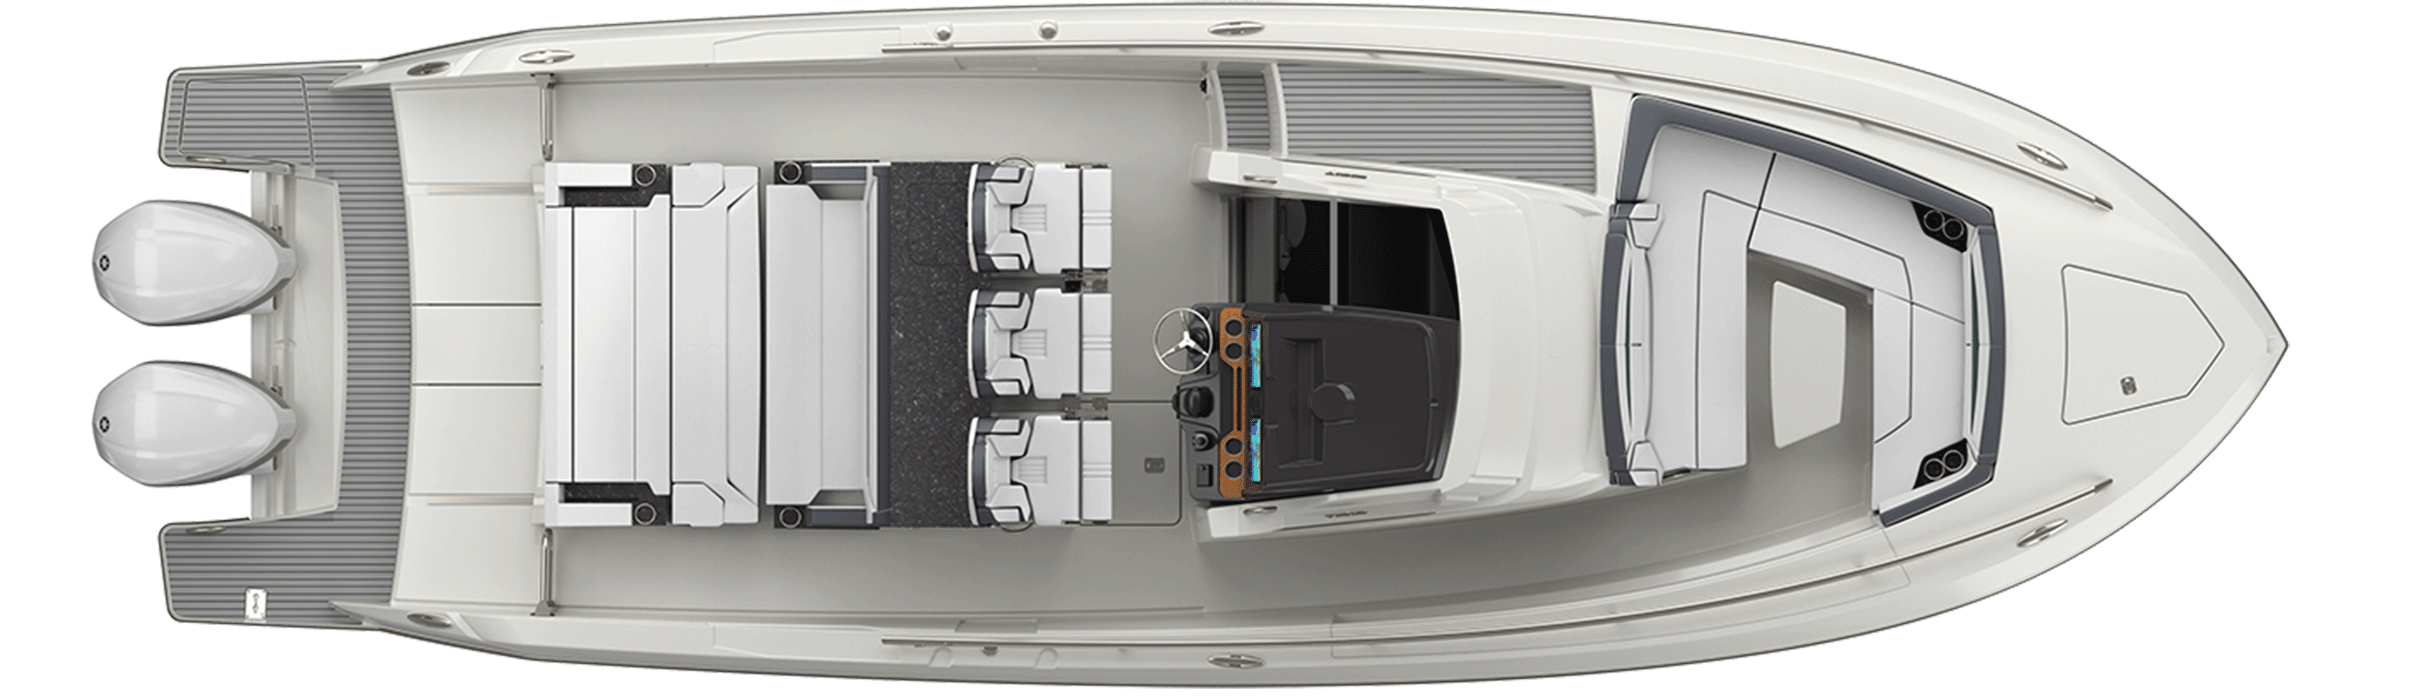 34 LS Exterior Plan View Without Hardtop Seat Down